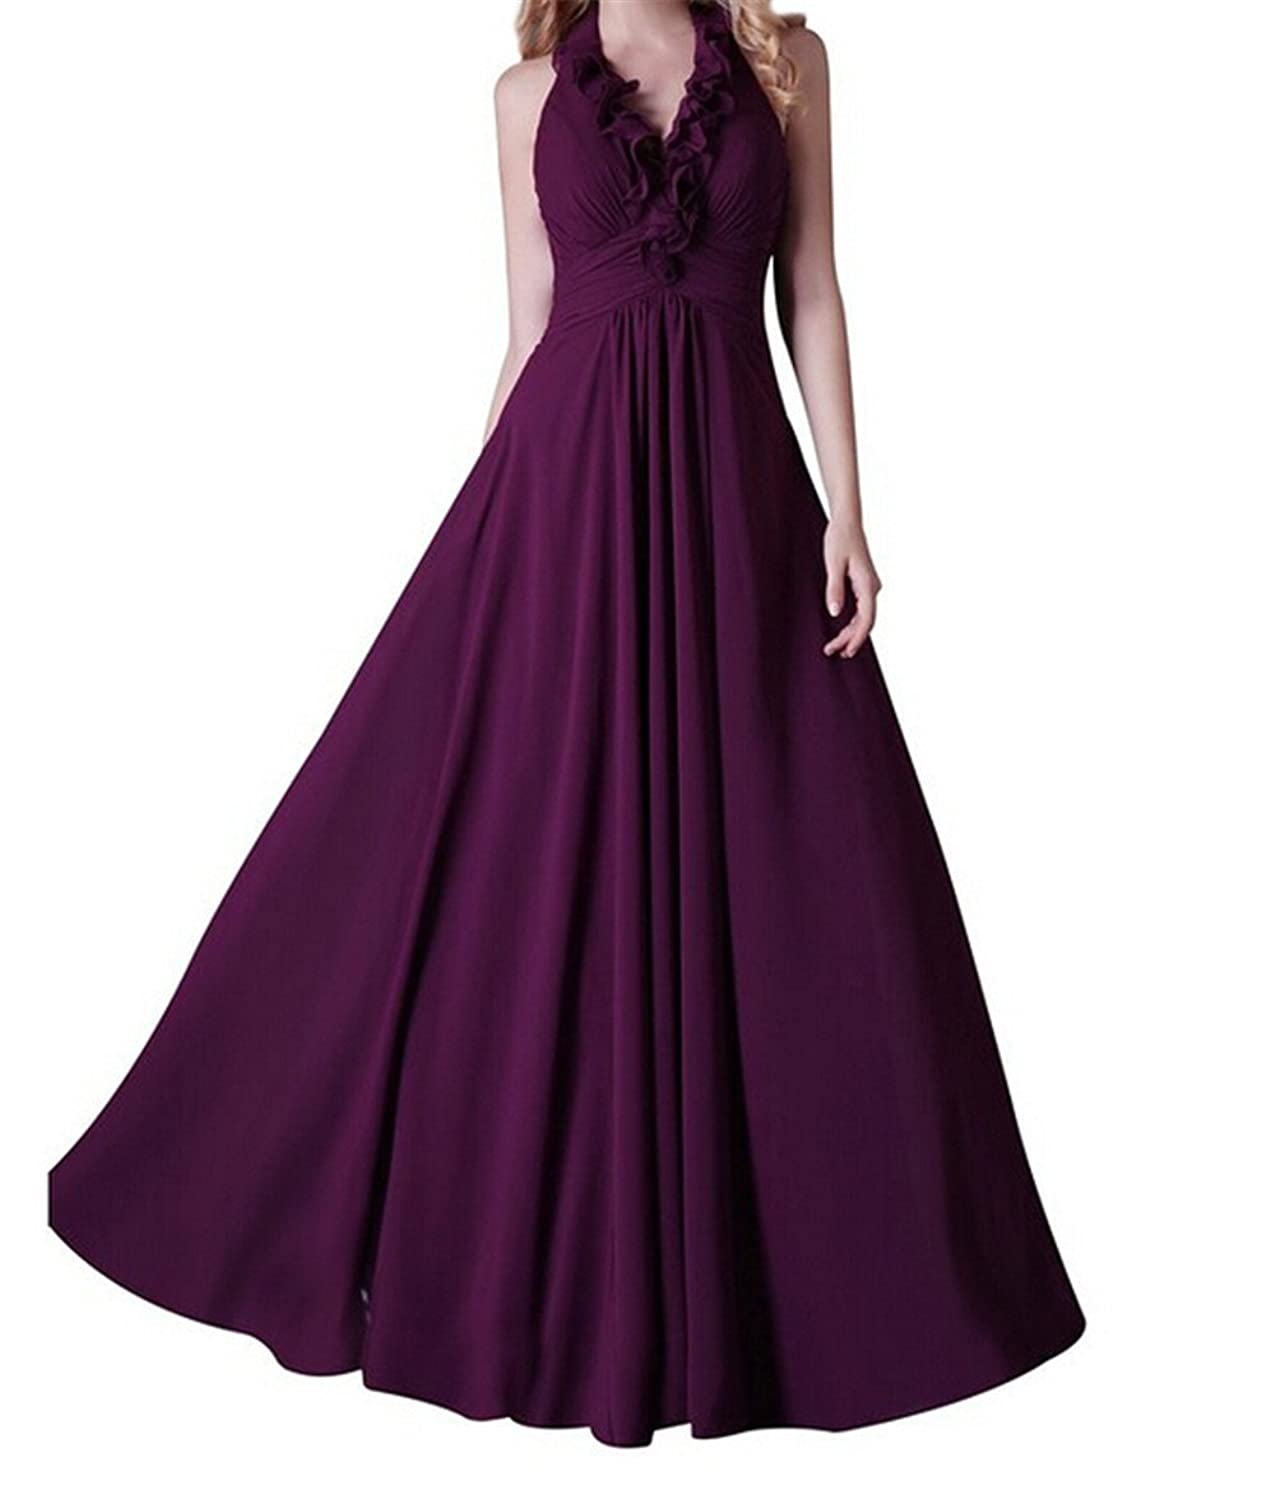 AngelDragon A-Line Halter Long Party Prom Dresses Chiffon Evening Gowns